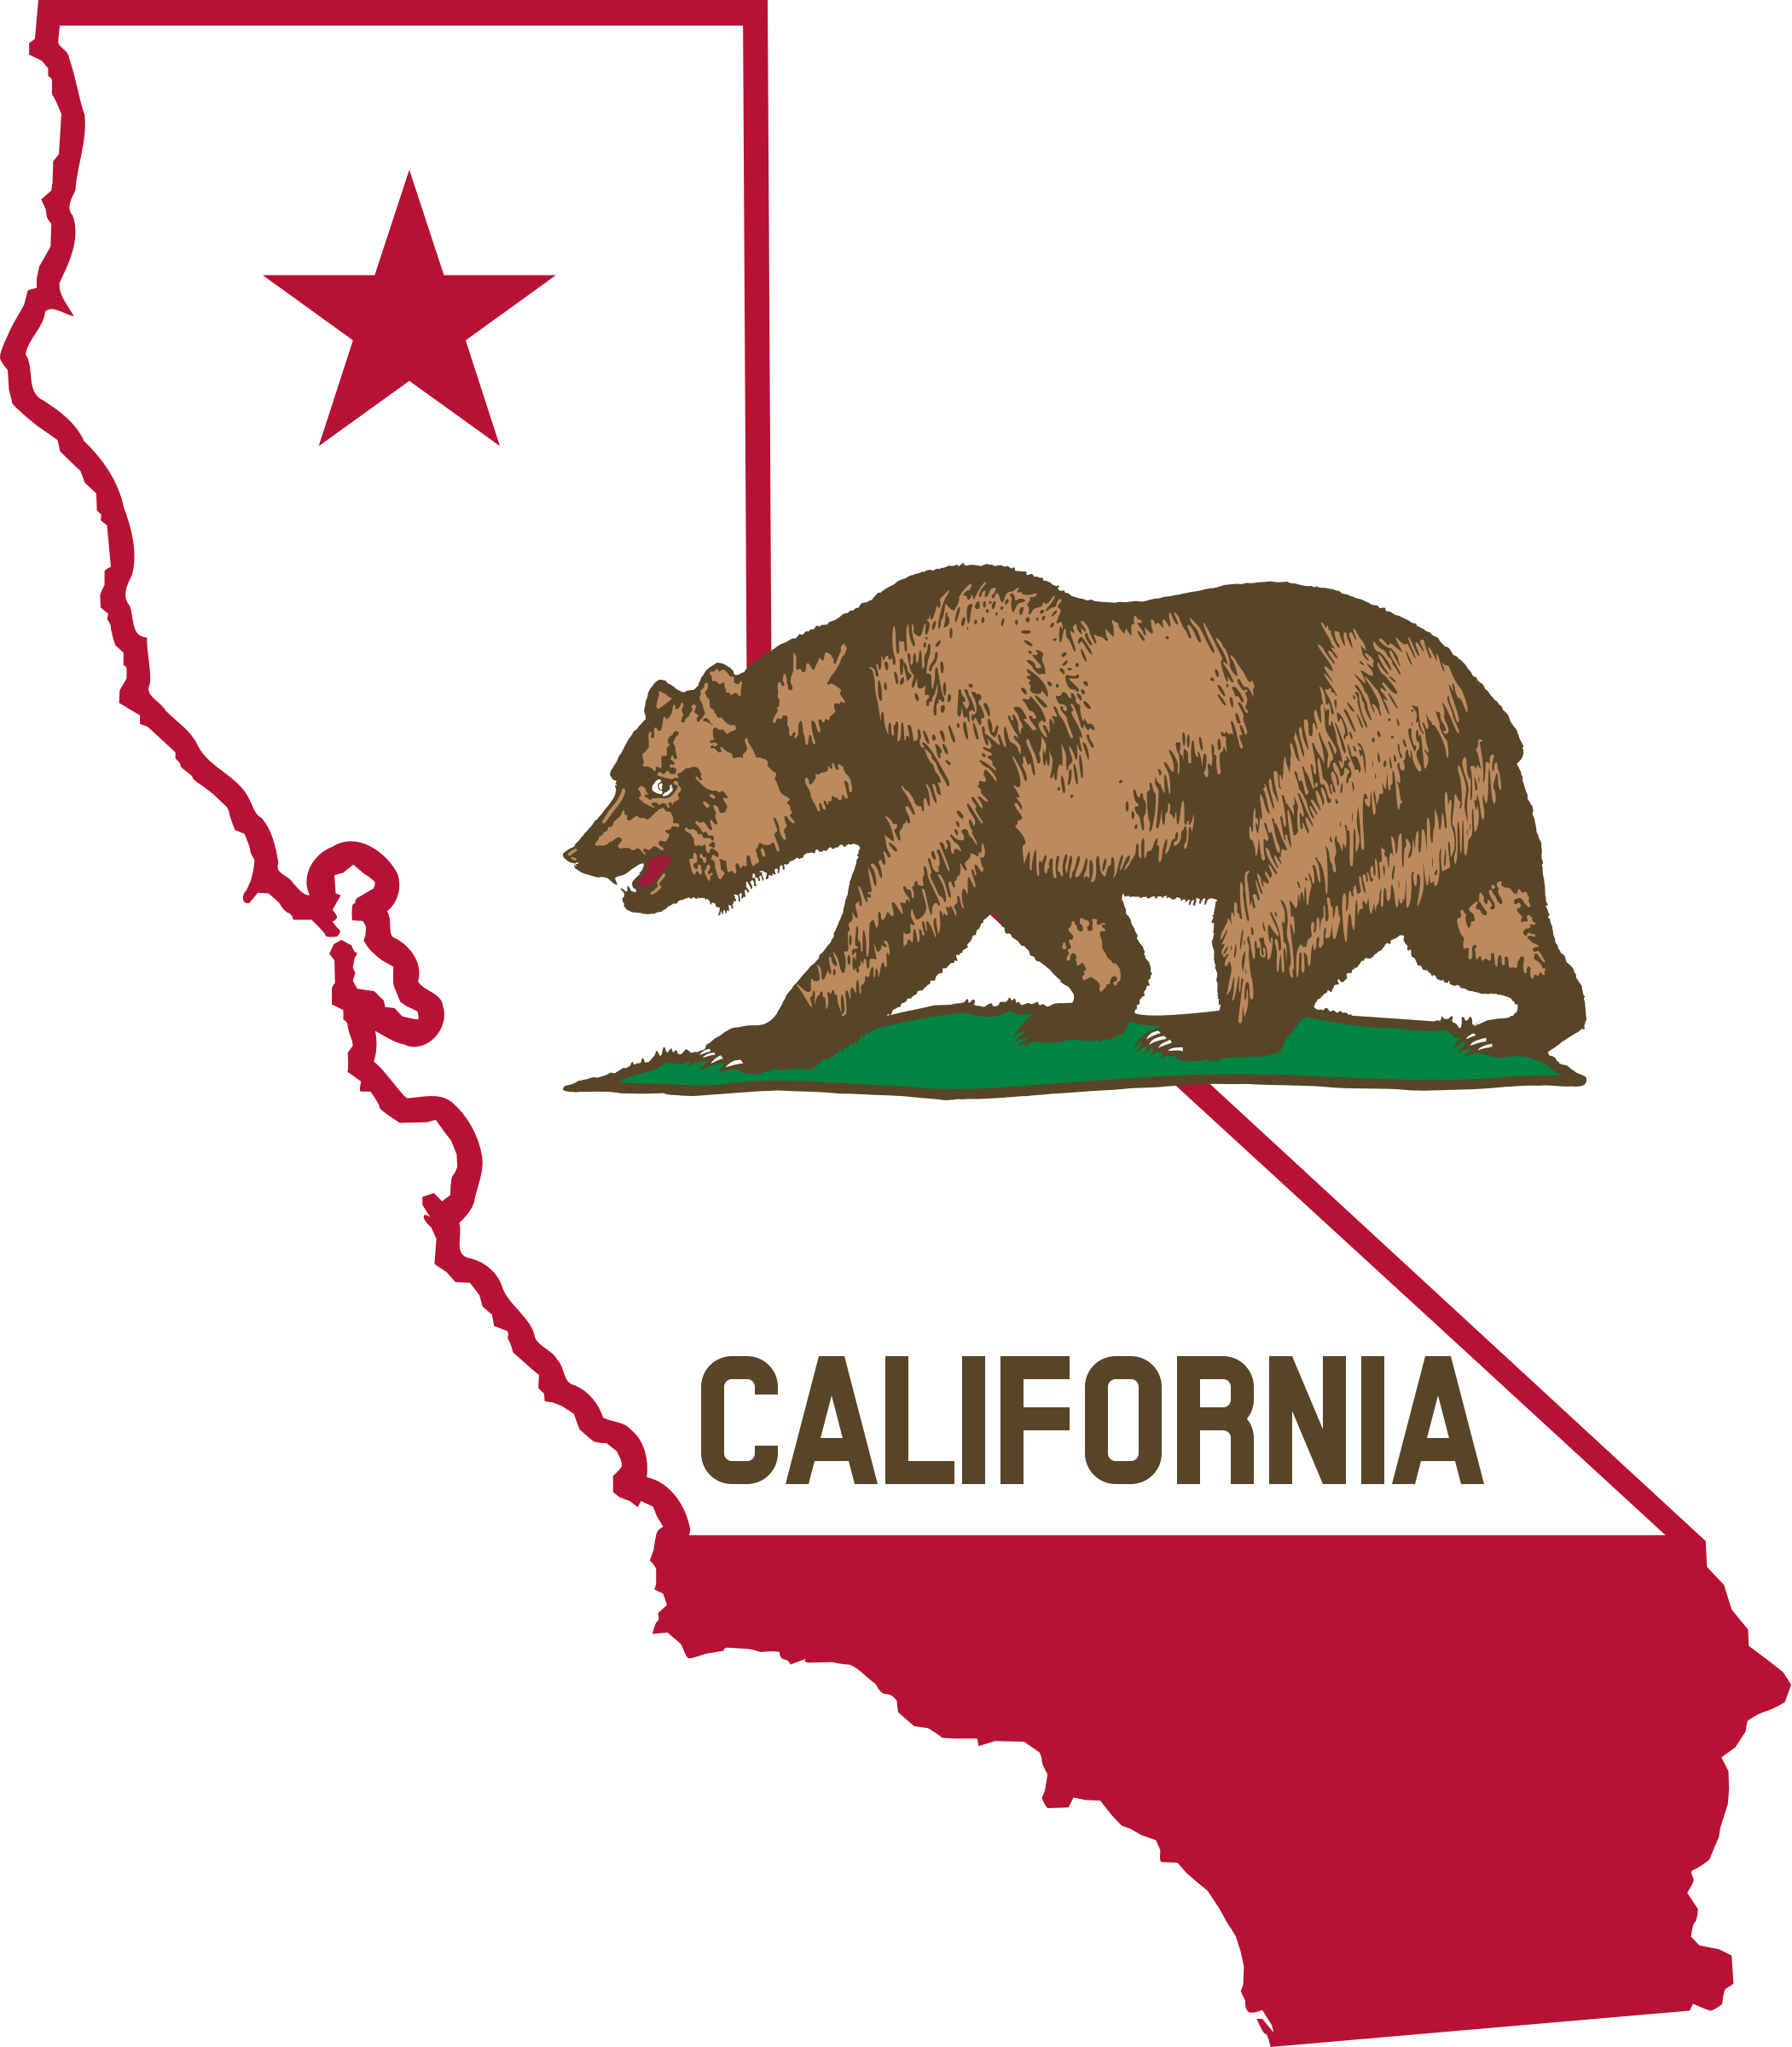 California outline and flag